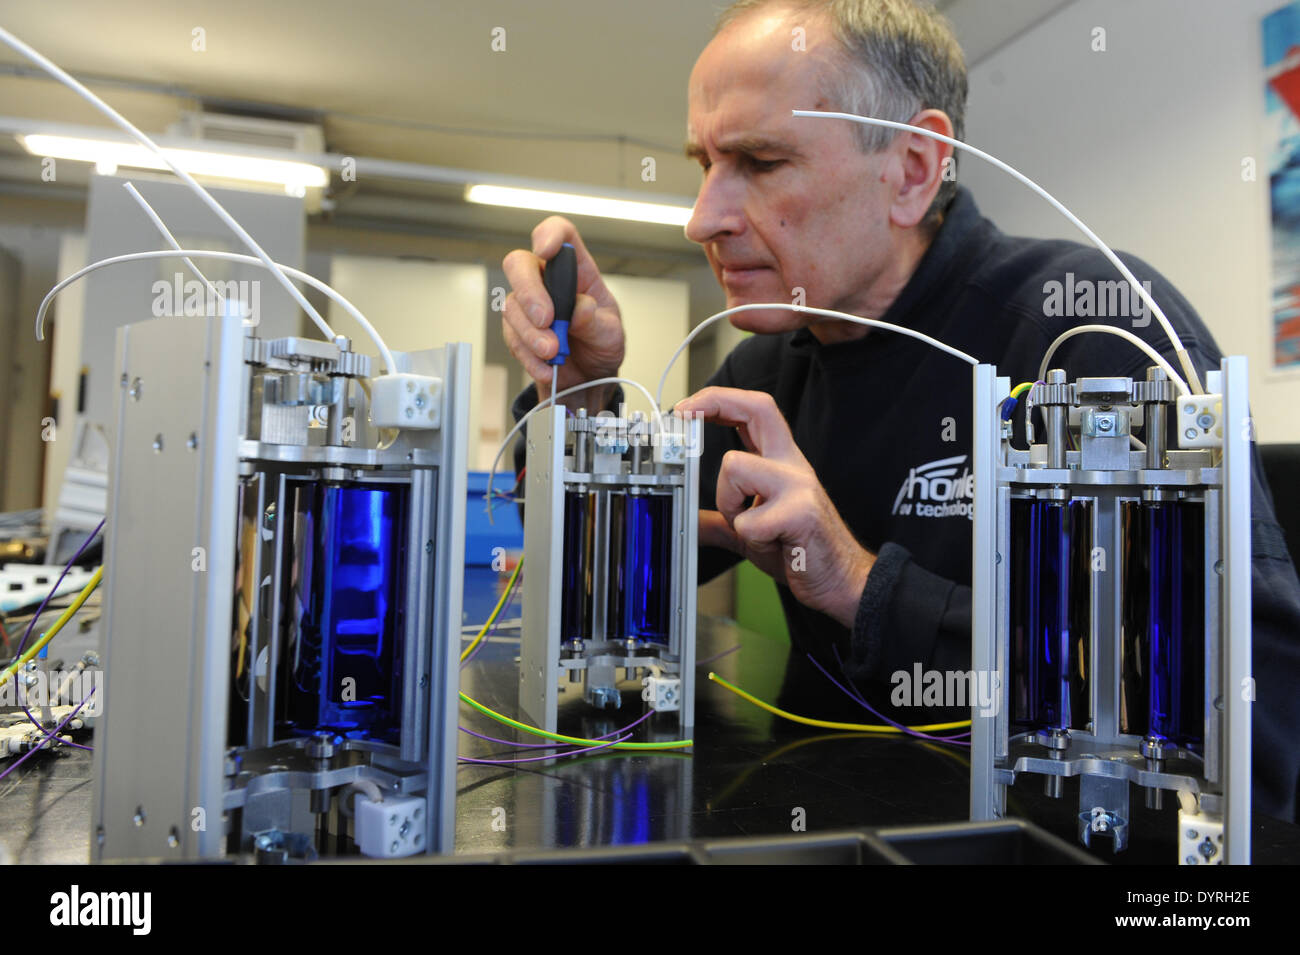 Production of irradiation devices at Dr. Hoenle AG in Graefelfing, 2011 - Stock Image